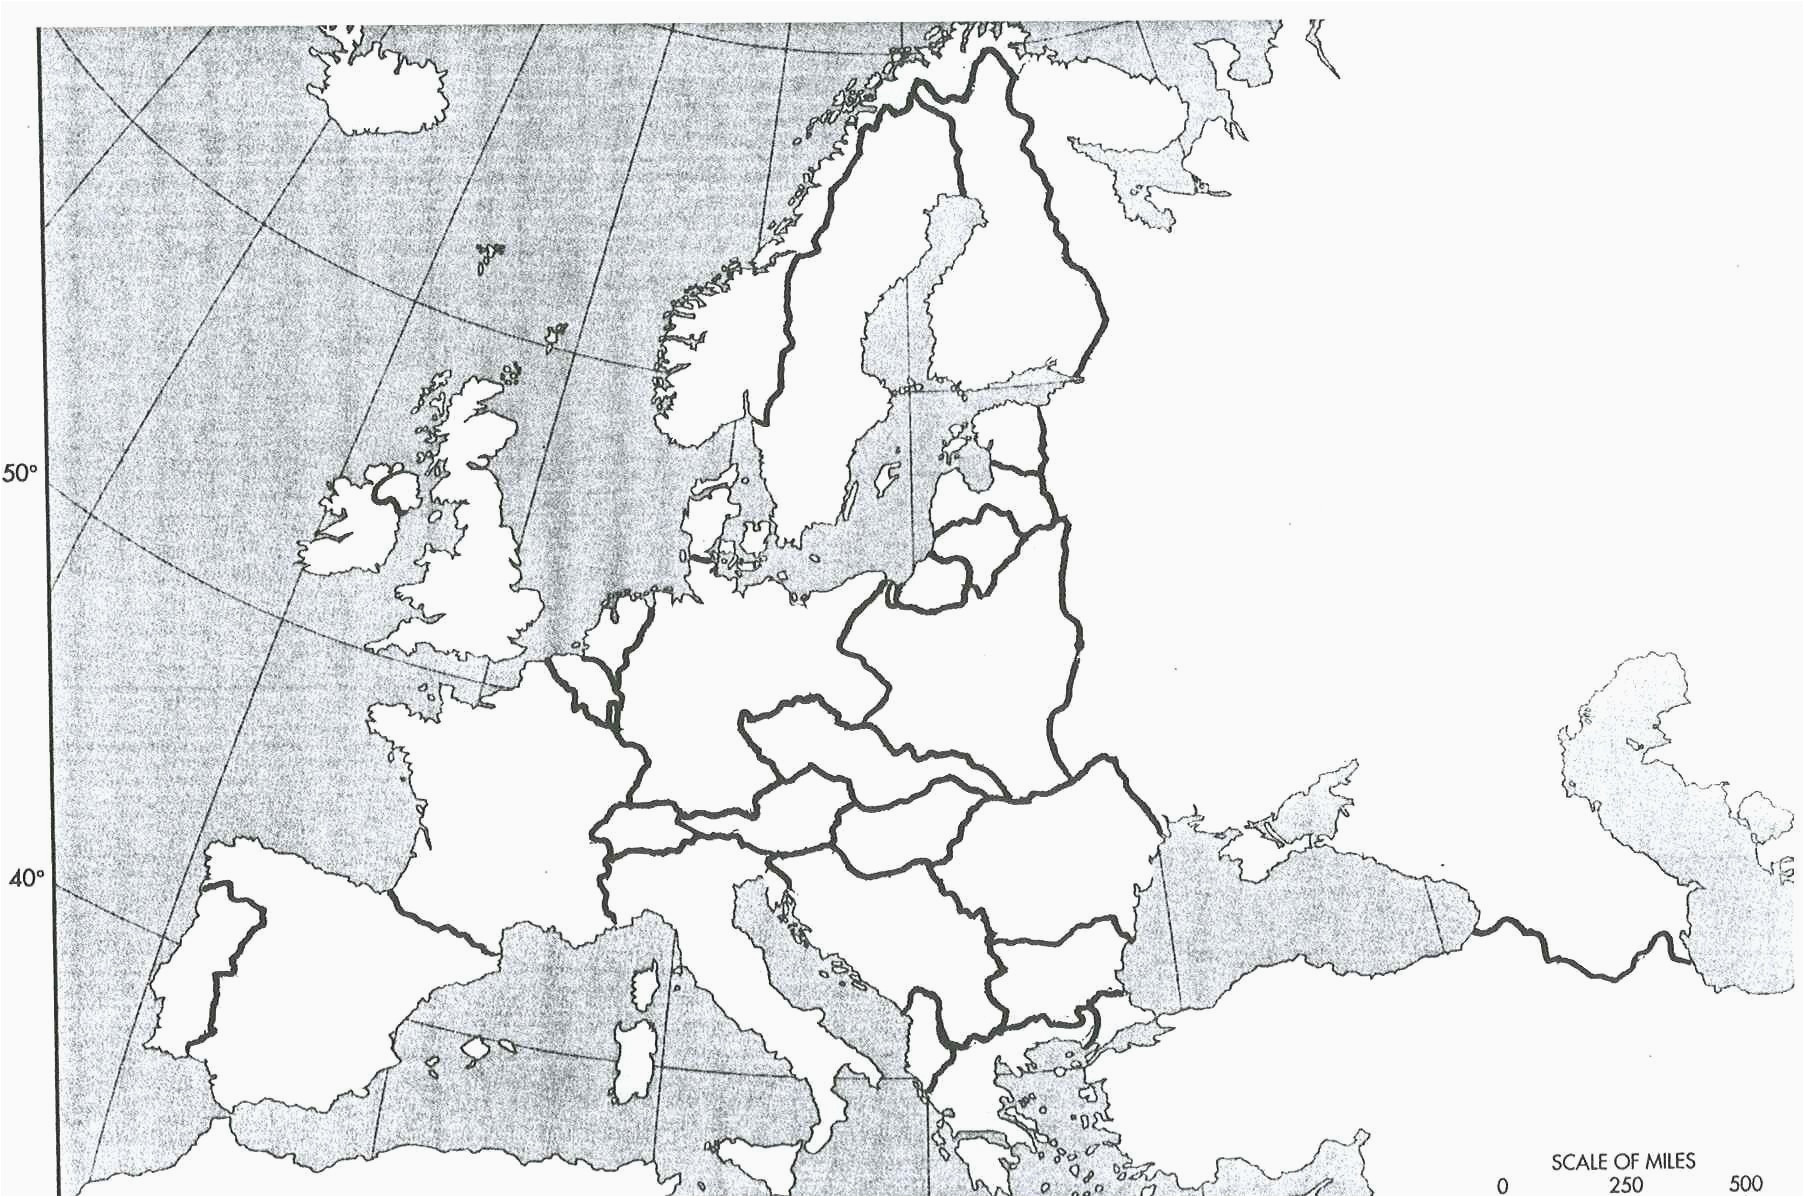 World War 1 In Europe Map Five Continents the World Best Europe In World War 1 Map